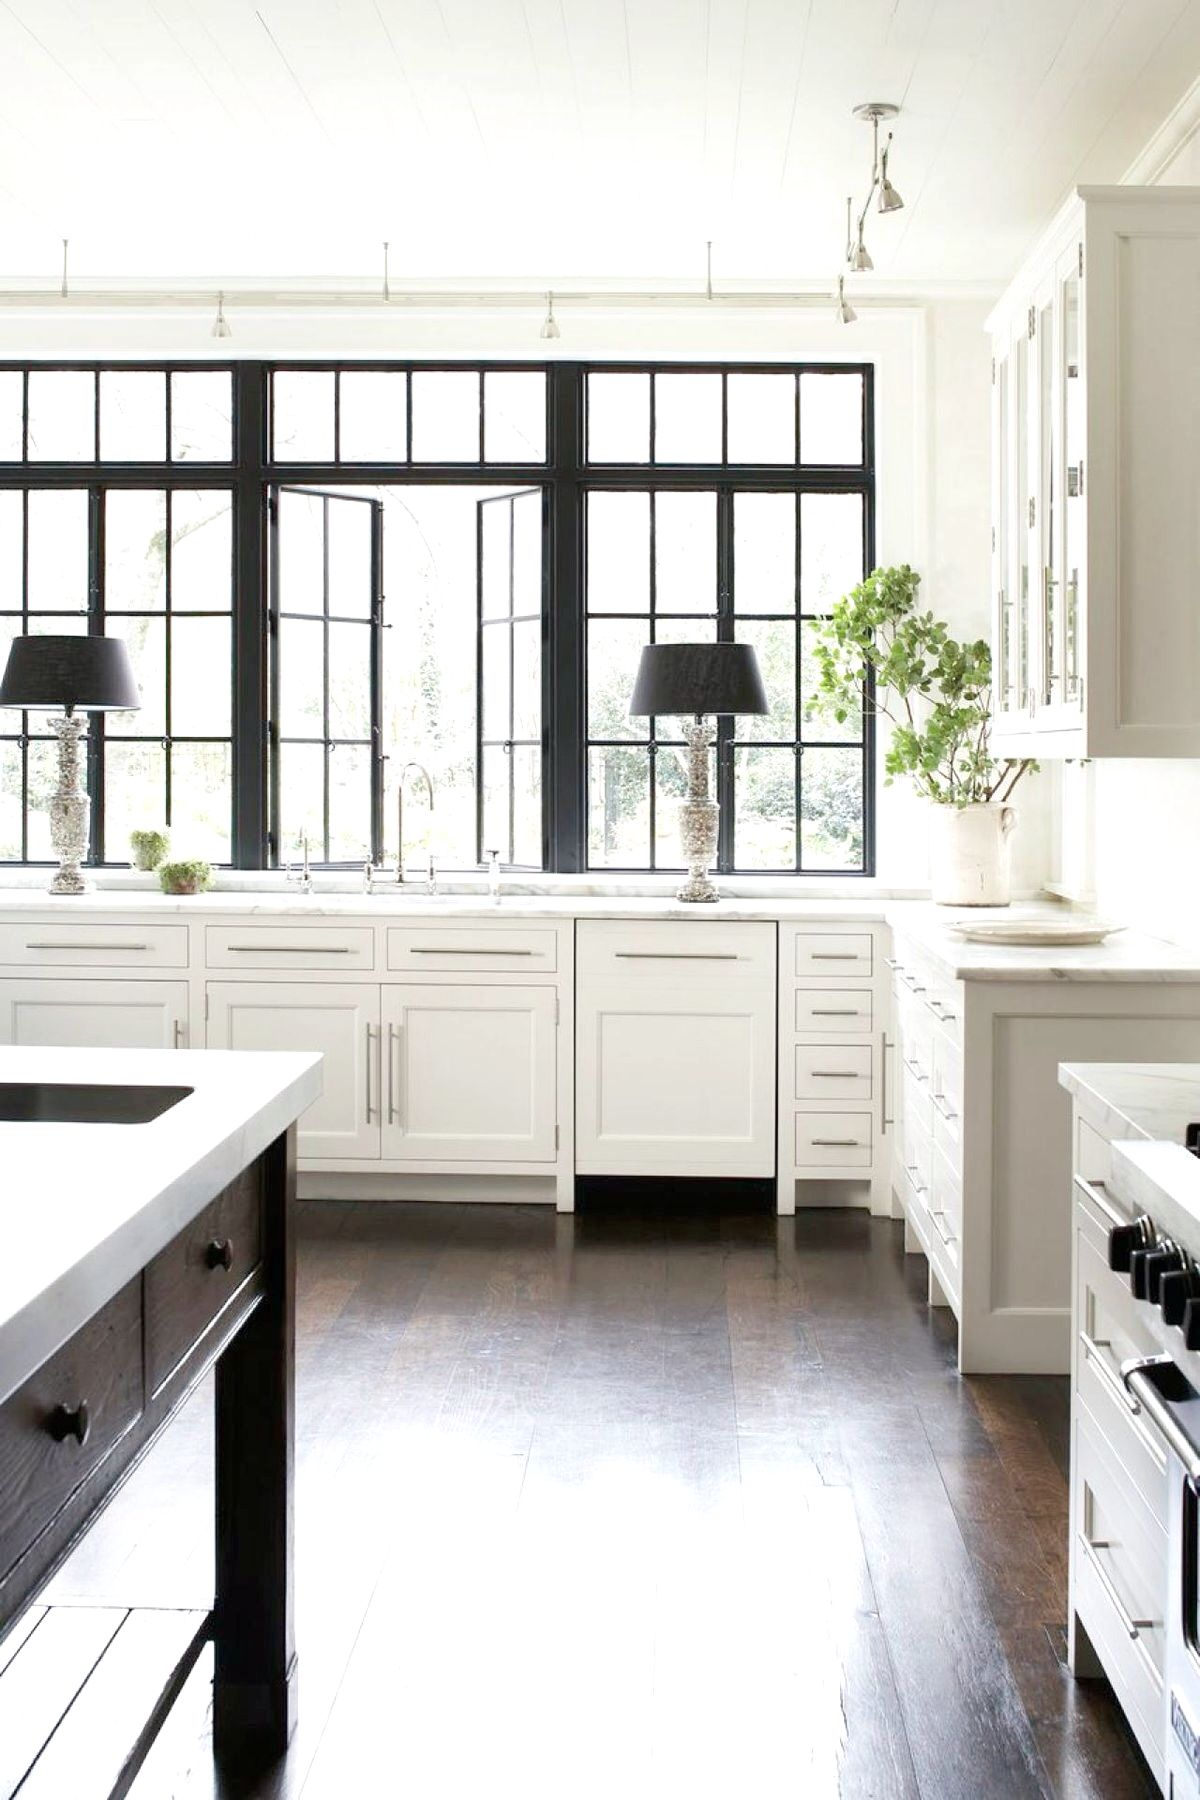 12 Best Antique White Kitchen Cabinets In Trending Design Ideas For Your Kitchen Home Gorgeous White Kitchen Transitional House